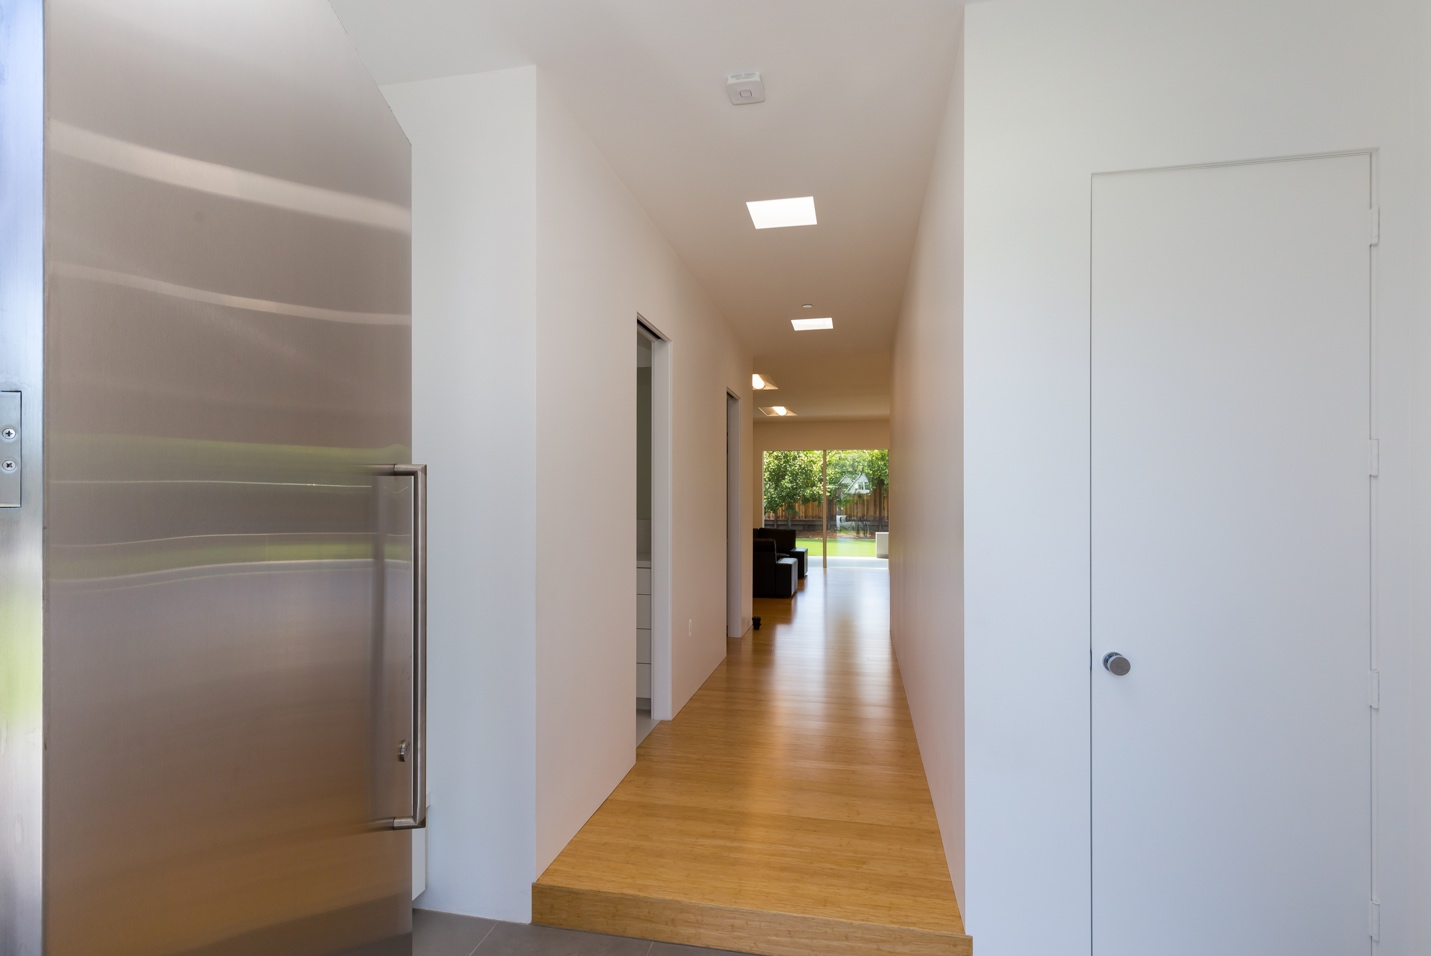 Corridoor, Modern Architect design, interior design work, Los Altos